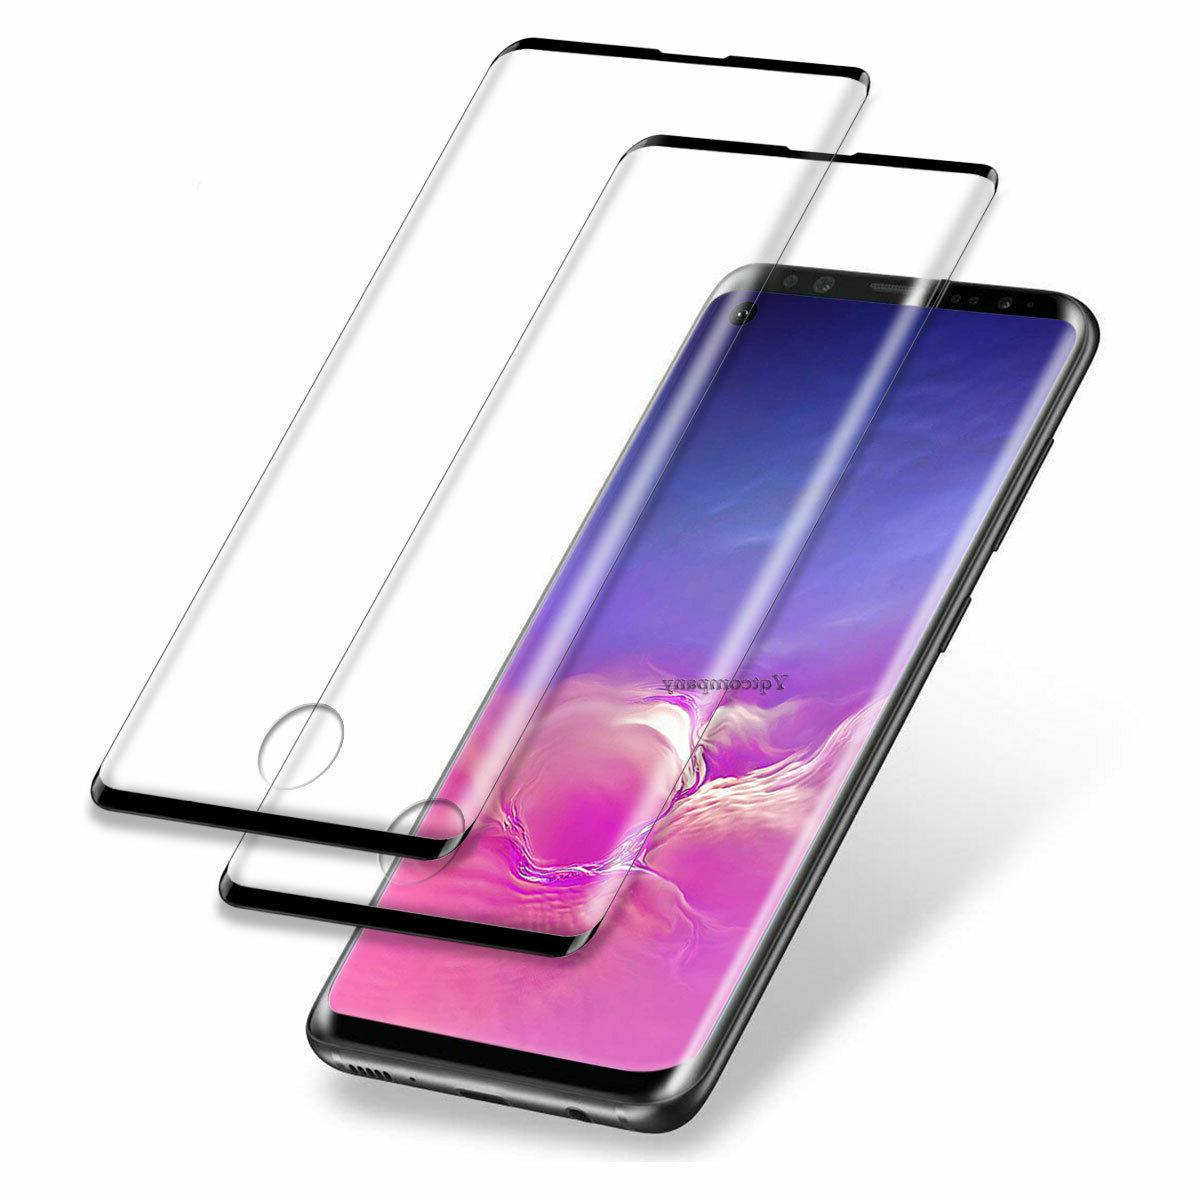 Samsung 10+/S10e Full Cover Tempered Glass